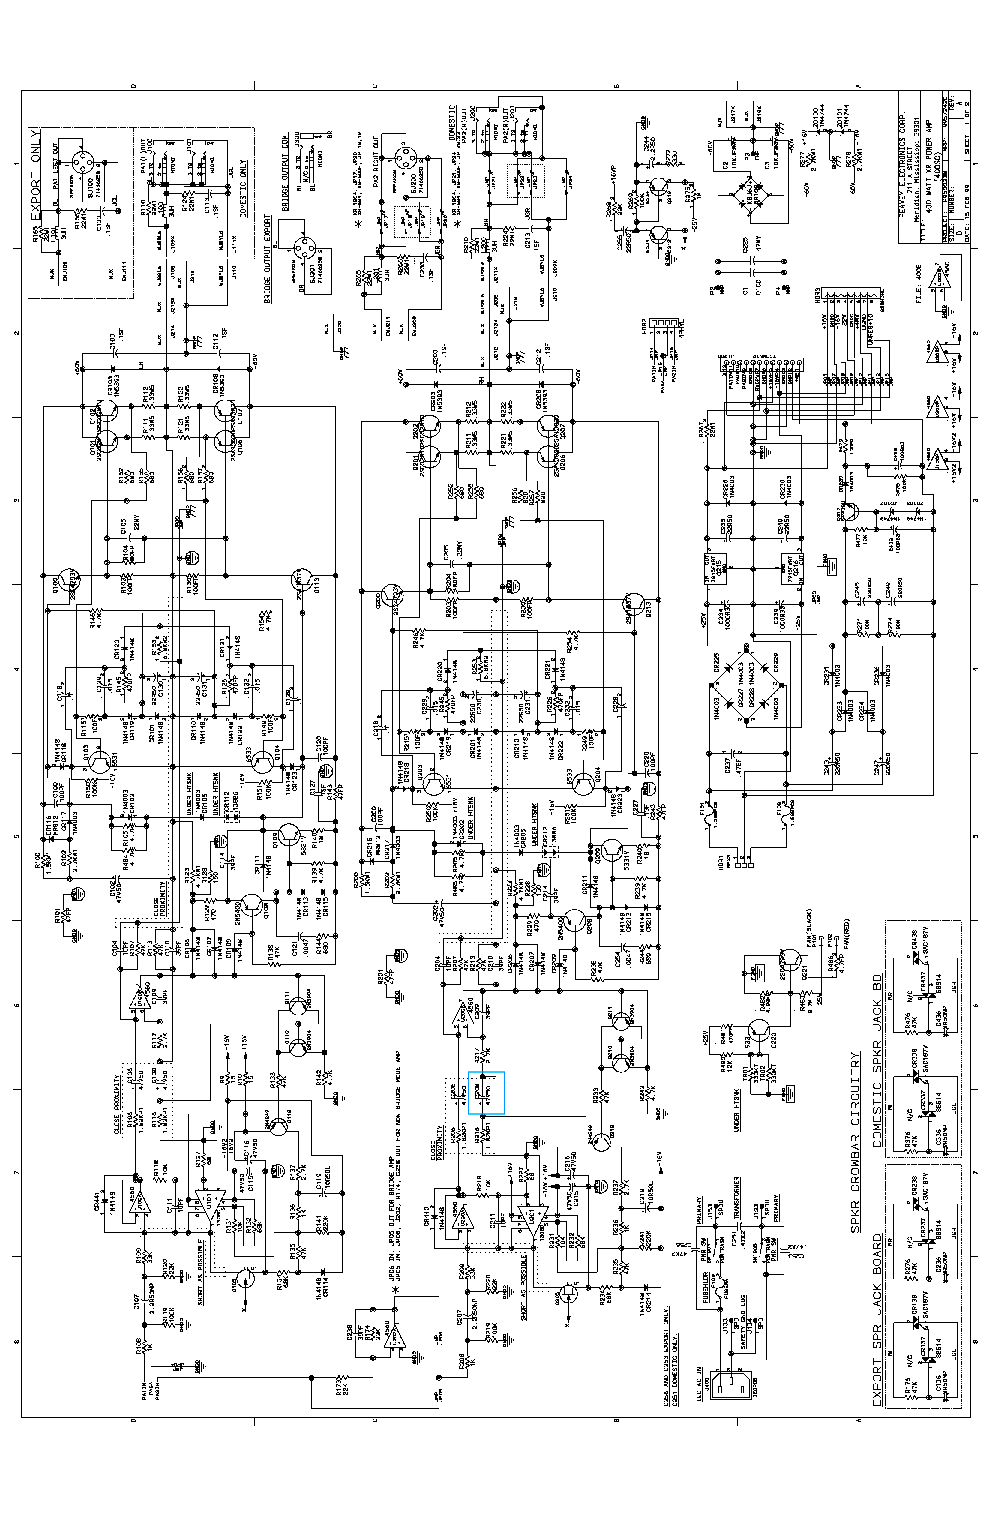 peavey subwoofer wiring diagram [wrg-6242] peavey 2000 power amp manual peavey horn wiring diagram